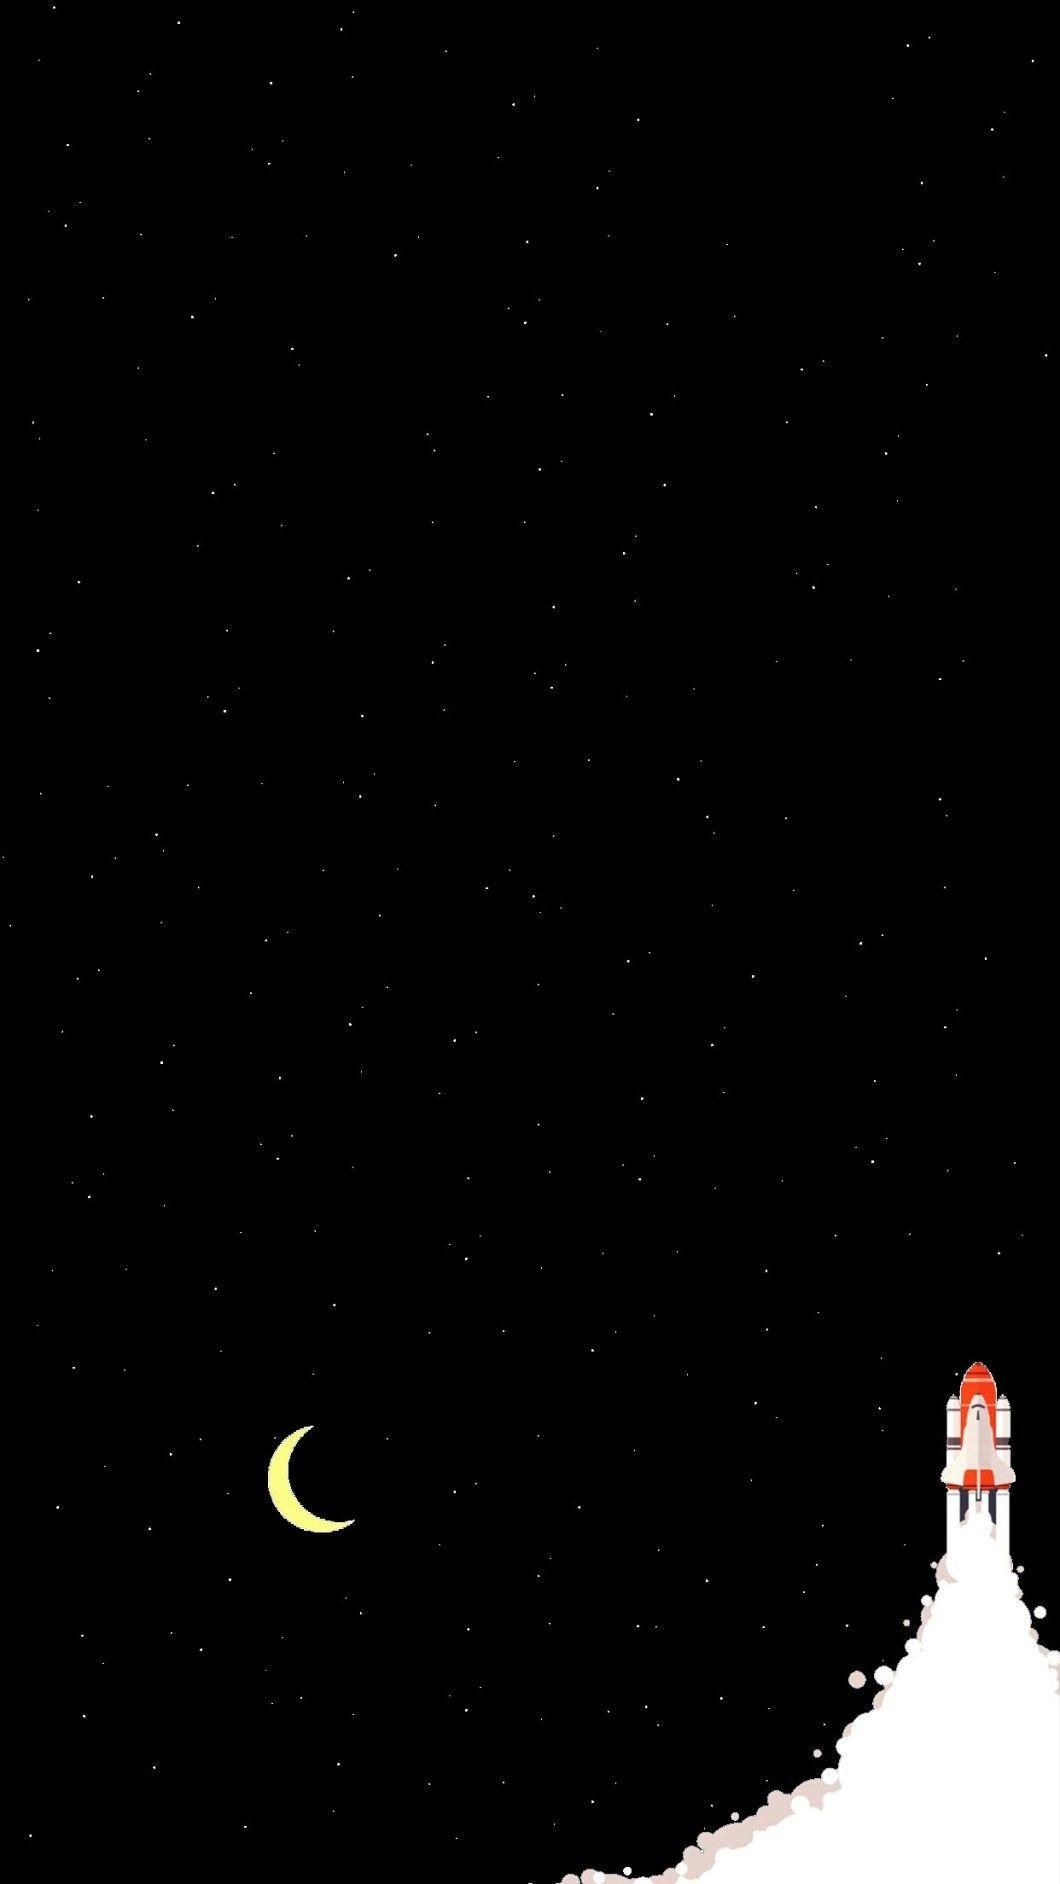 Space Minimal Wallpapers   iPhone Wallpapers   Mobile Wallpaper   Android   HD Wallpaper